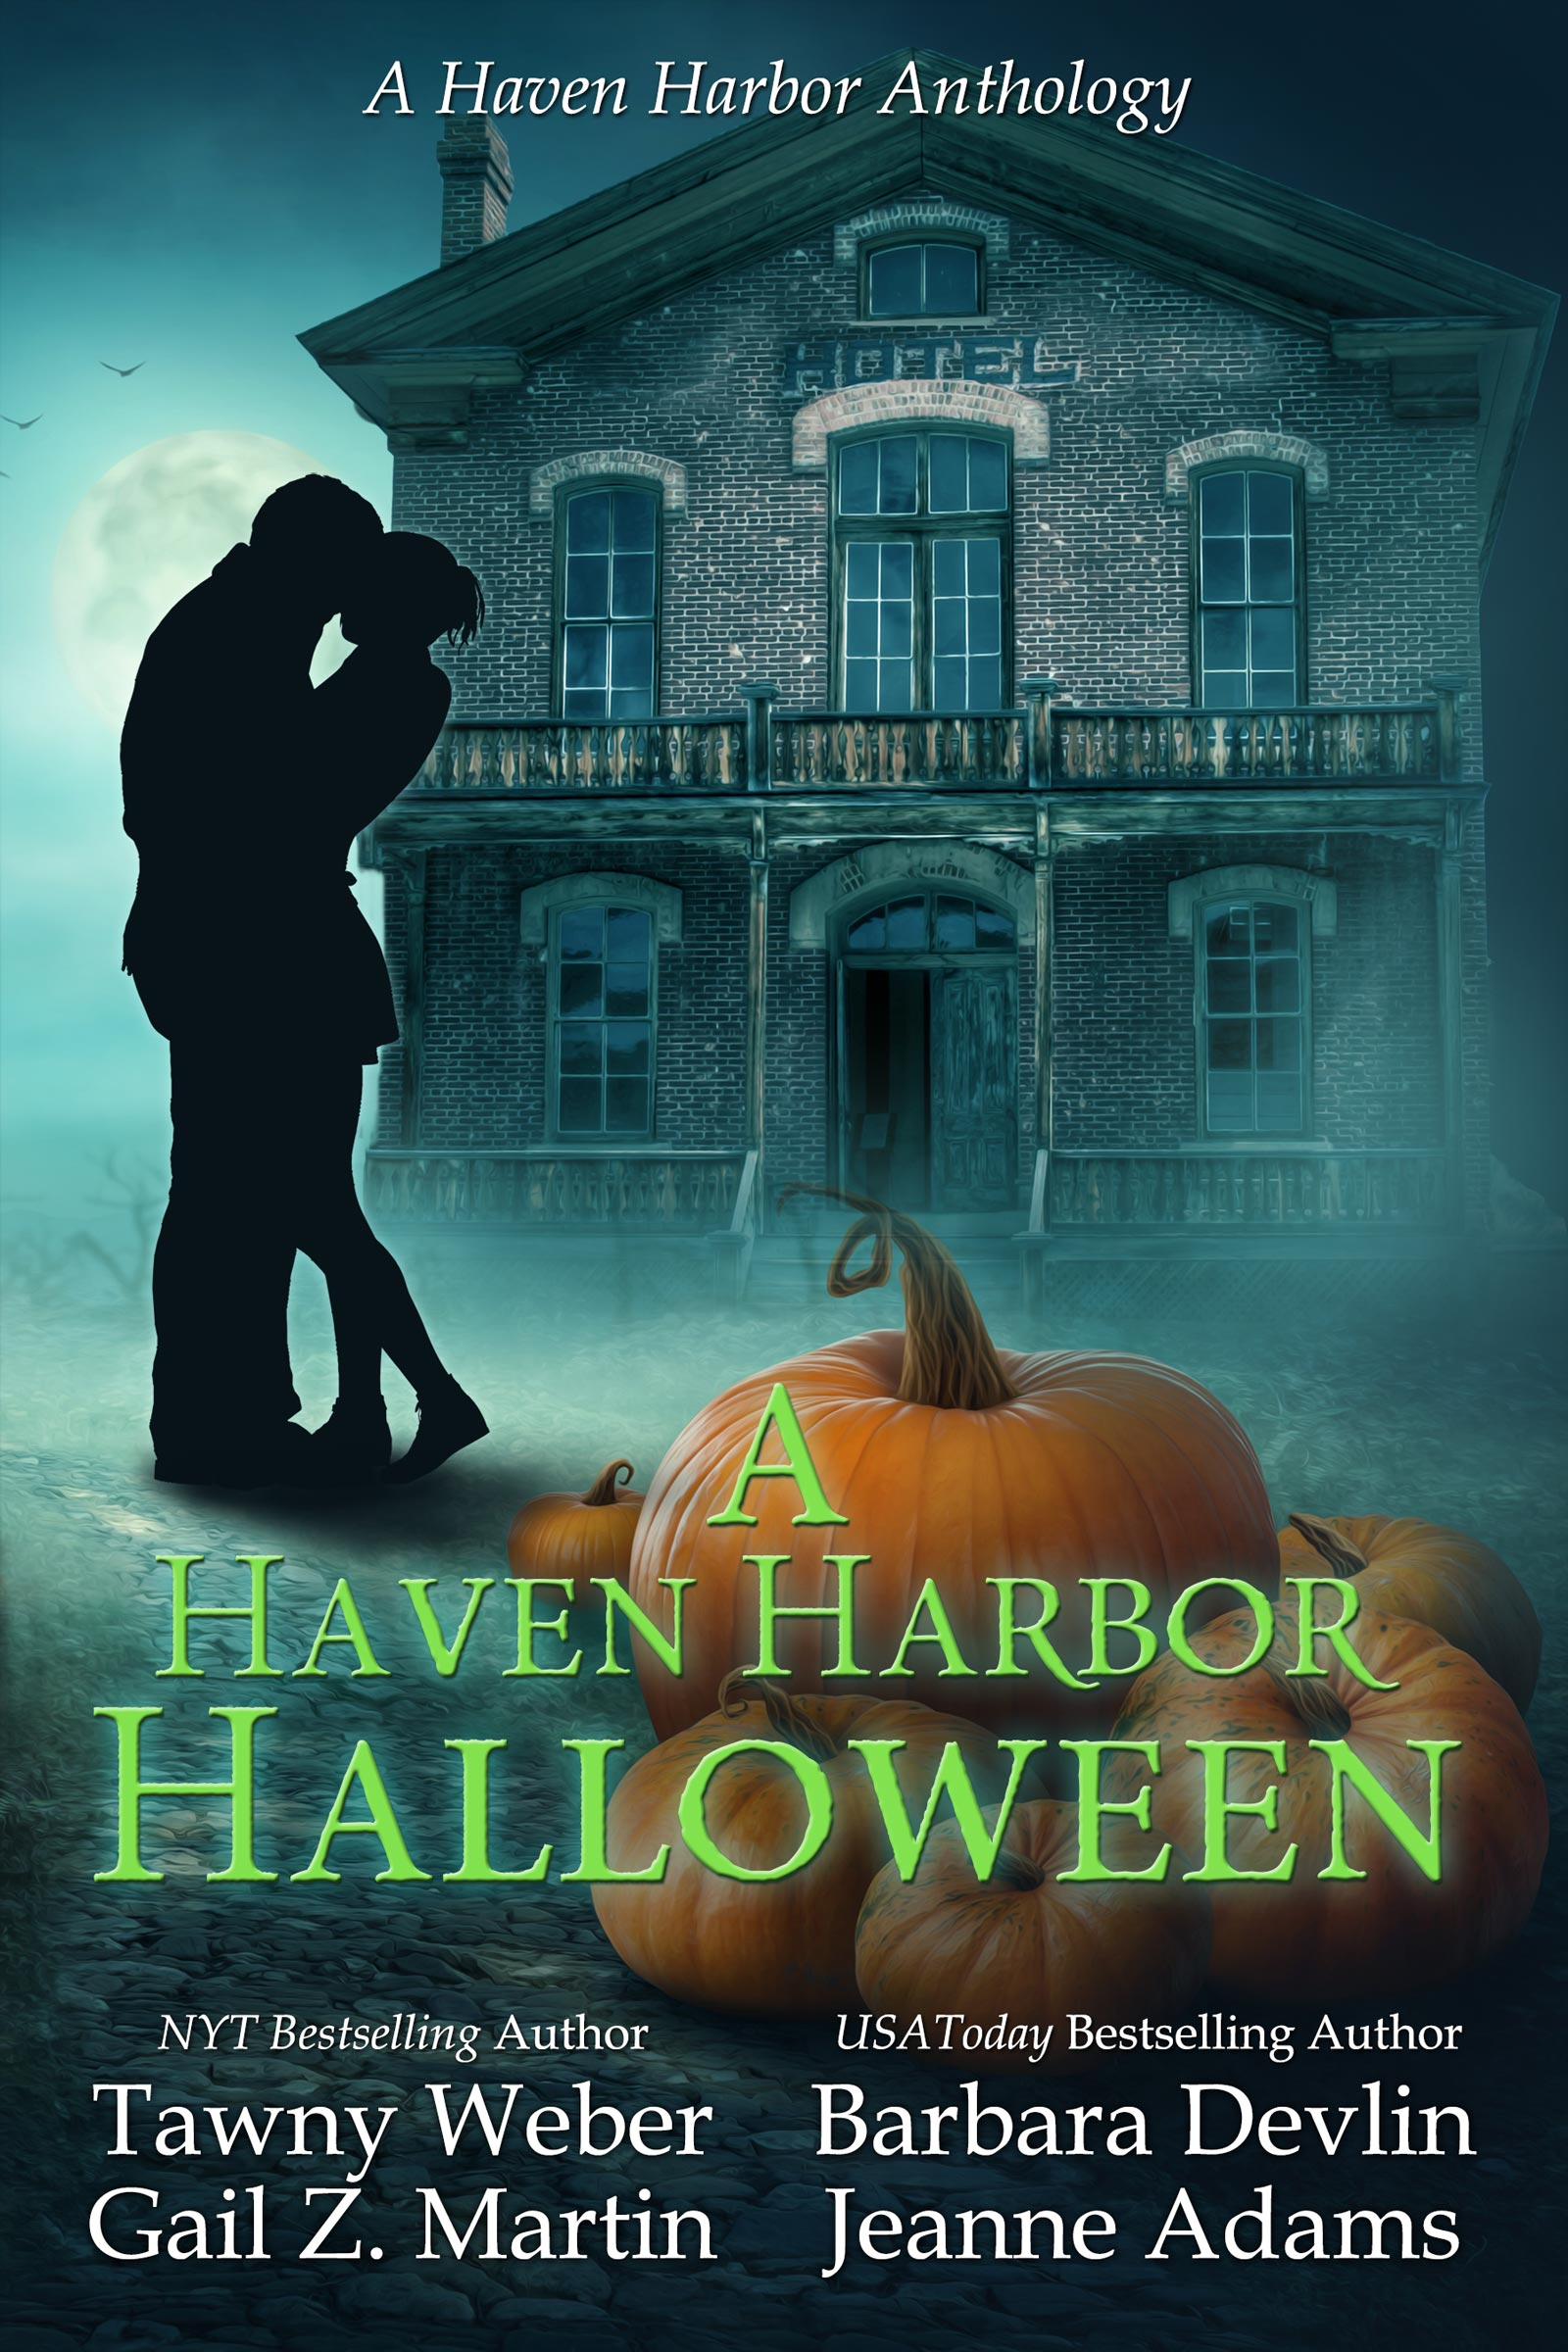 A Haven Harbor Halloween